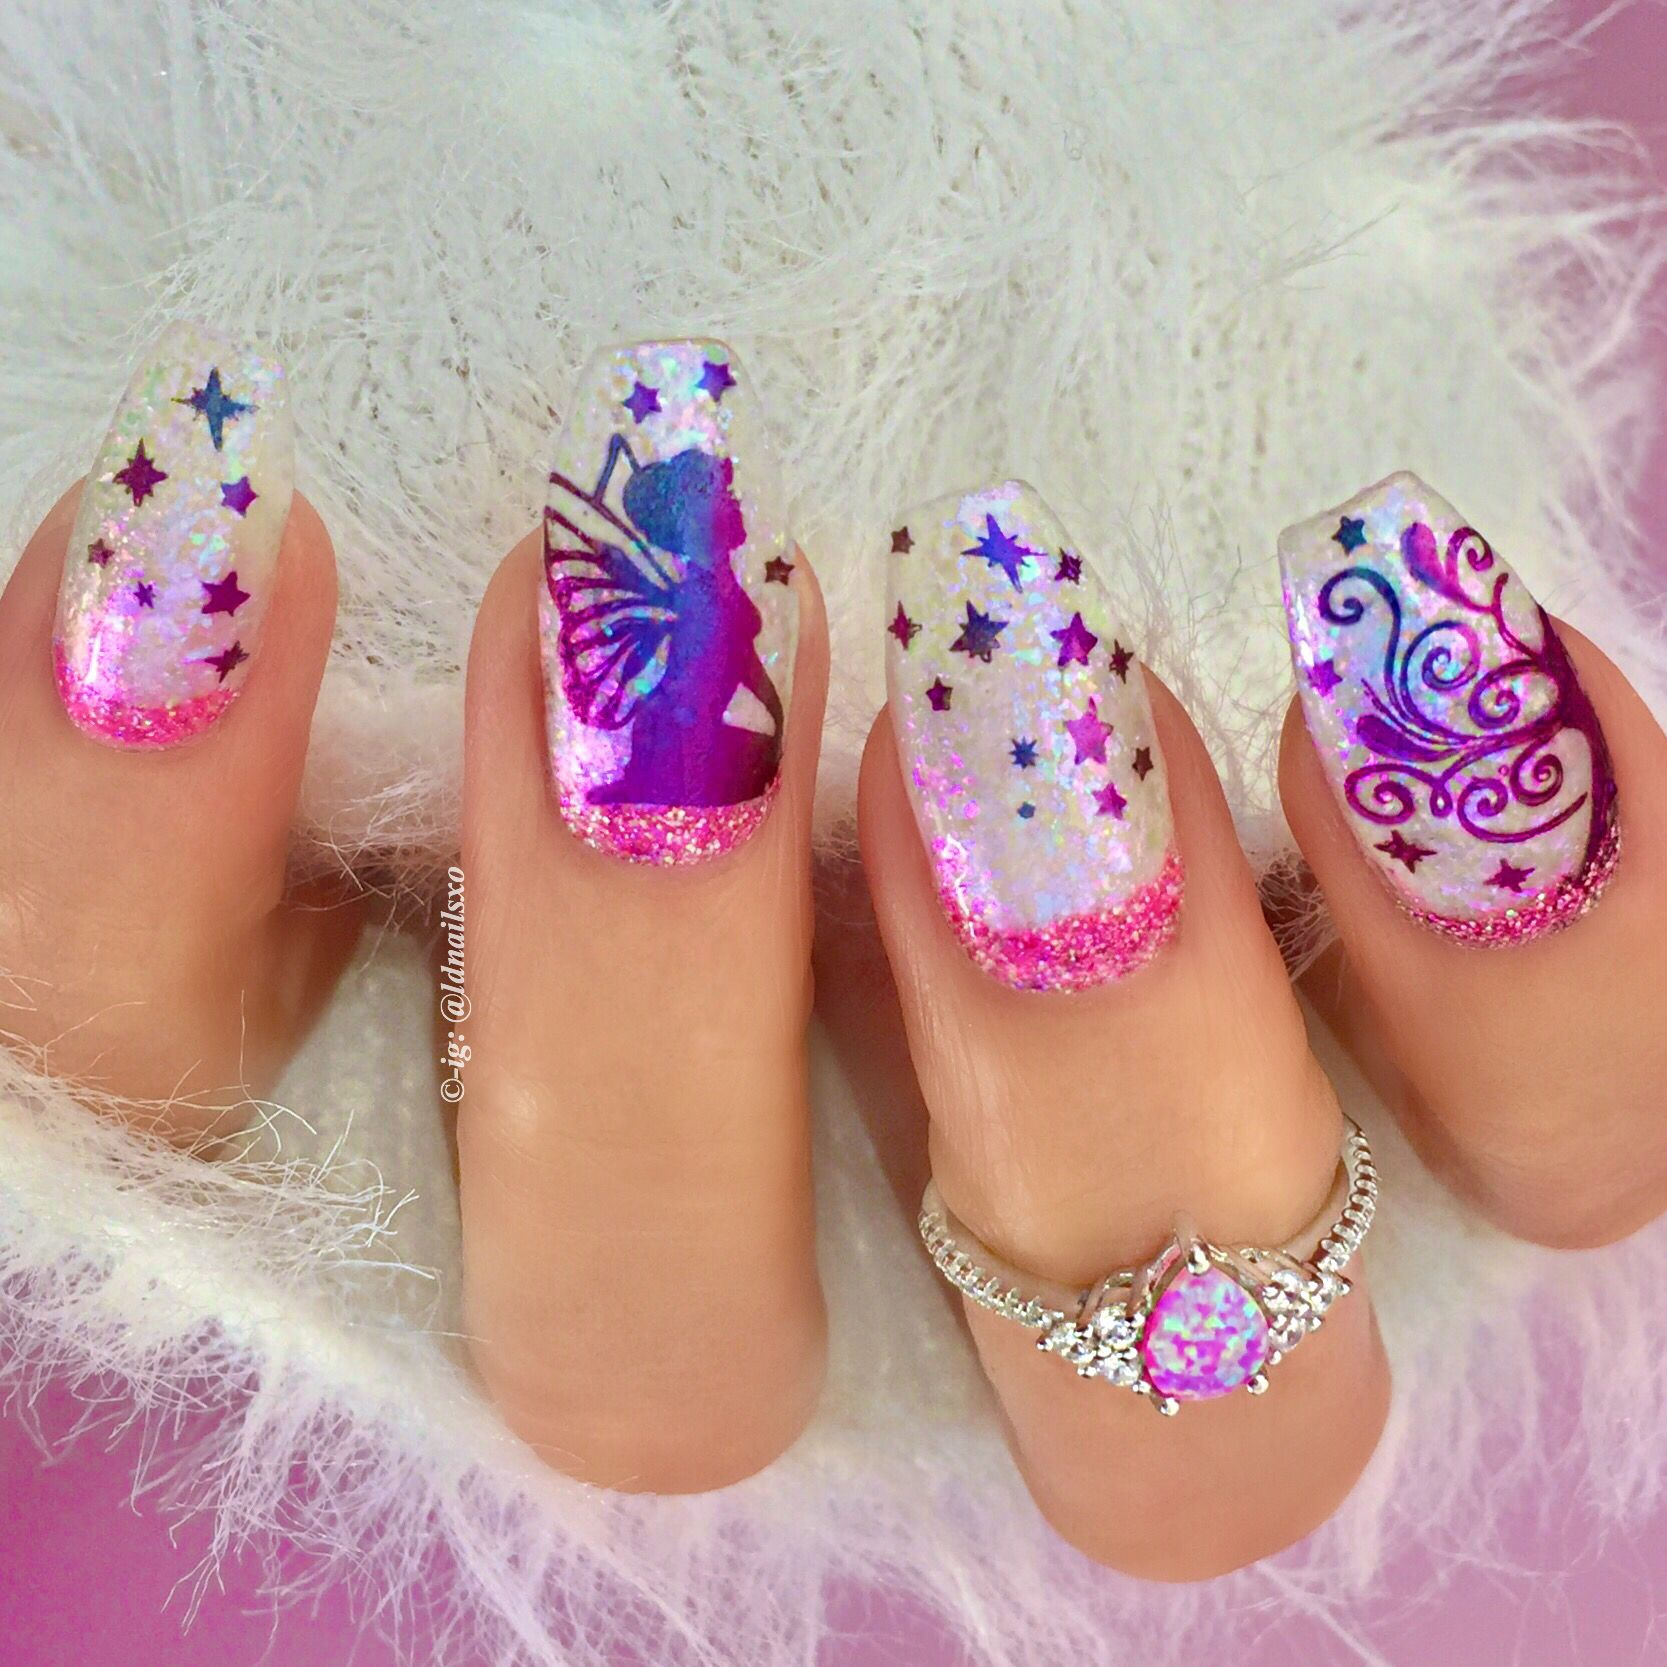 Fairy Twinkle ✨ Nails / Nail Art - Click link below this photo for ...